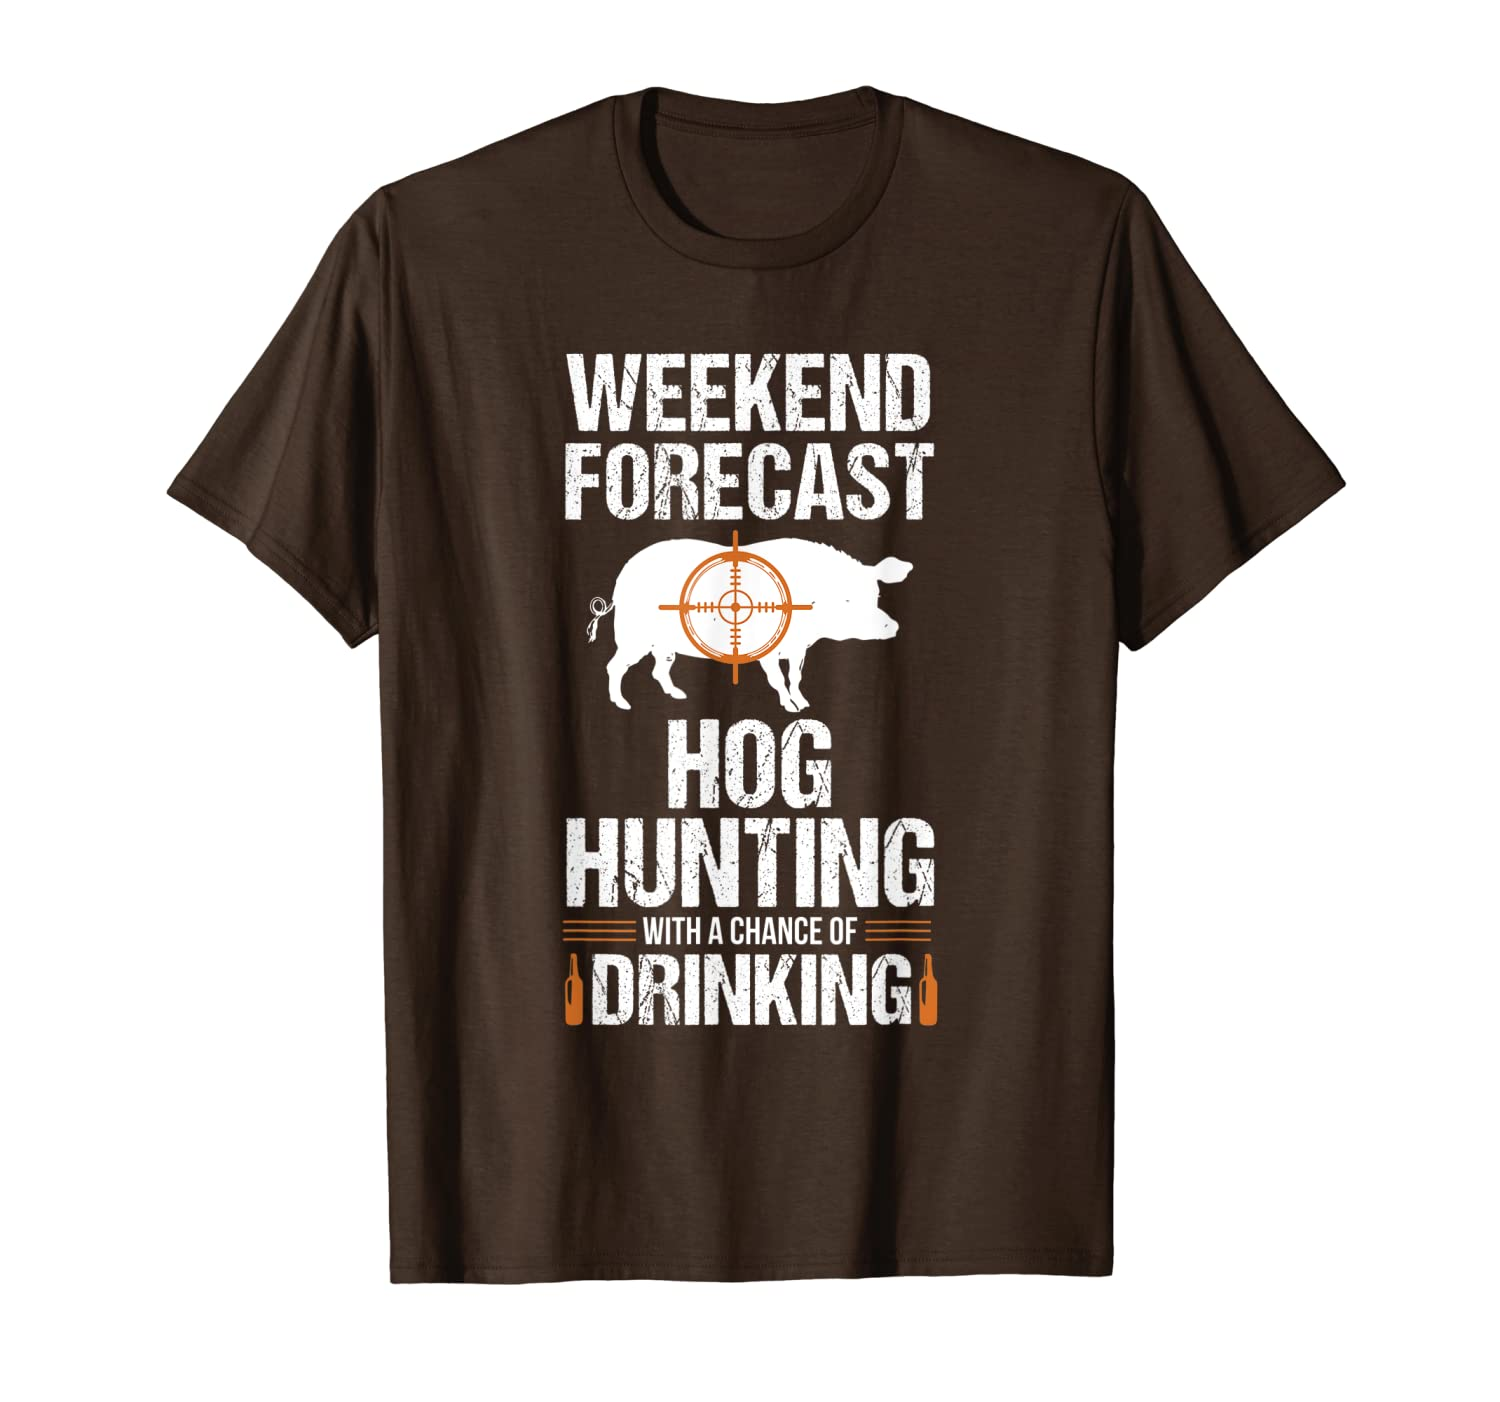 Hog Hunting Funny Weekend Beer Boar Hunter Pig Gift T-Shirt Unisex Tshirt